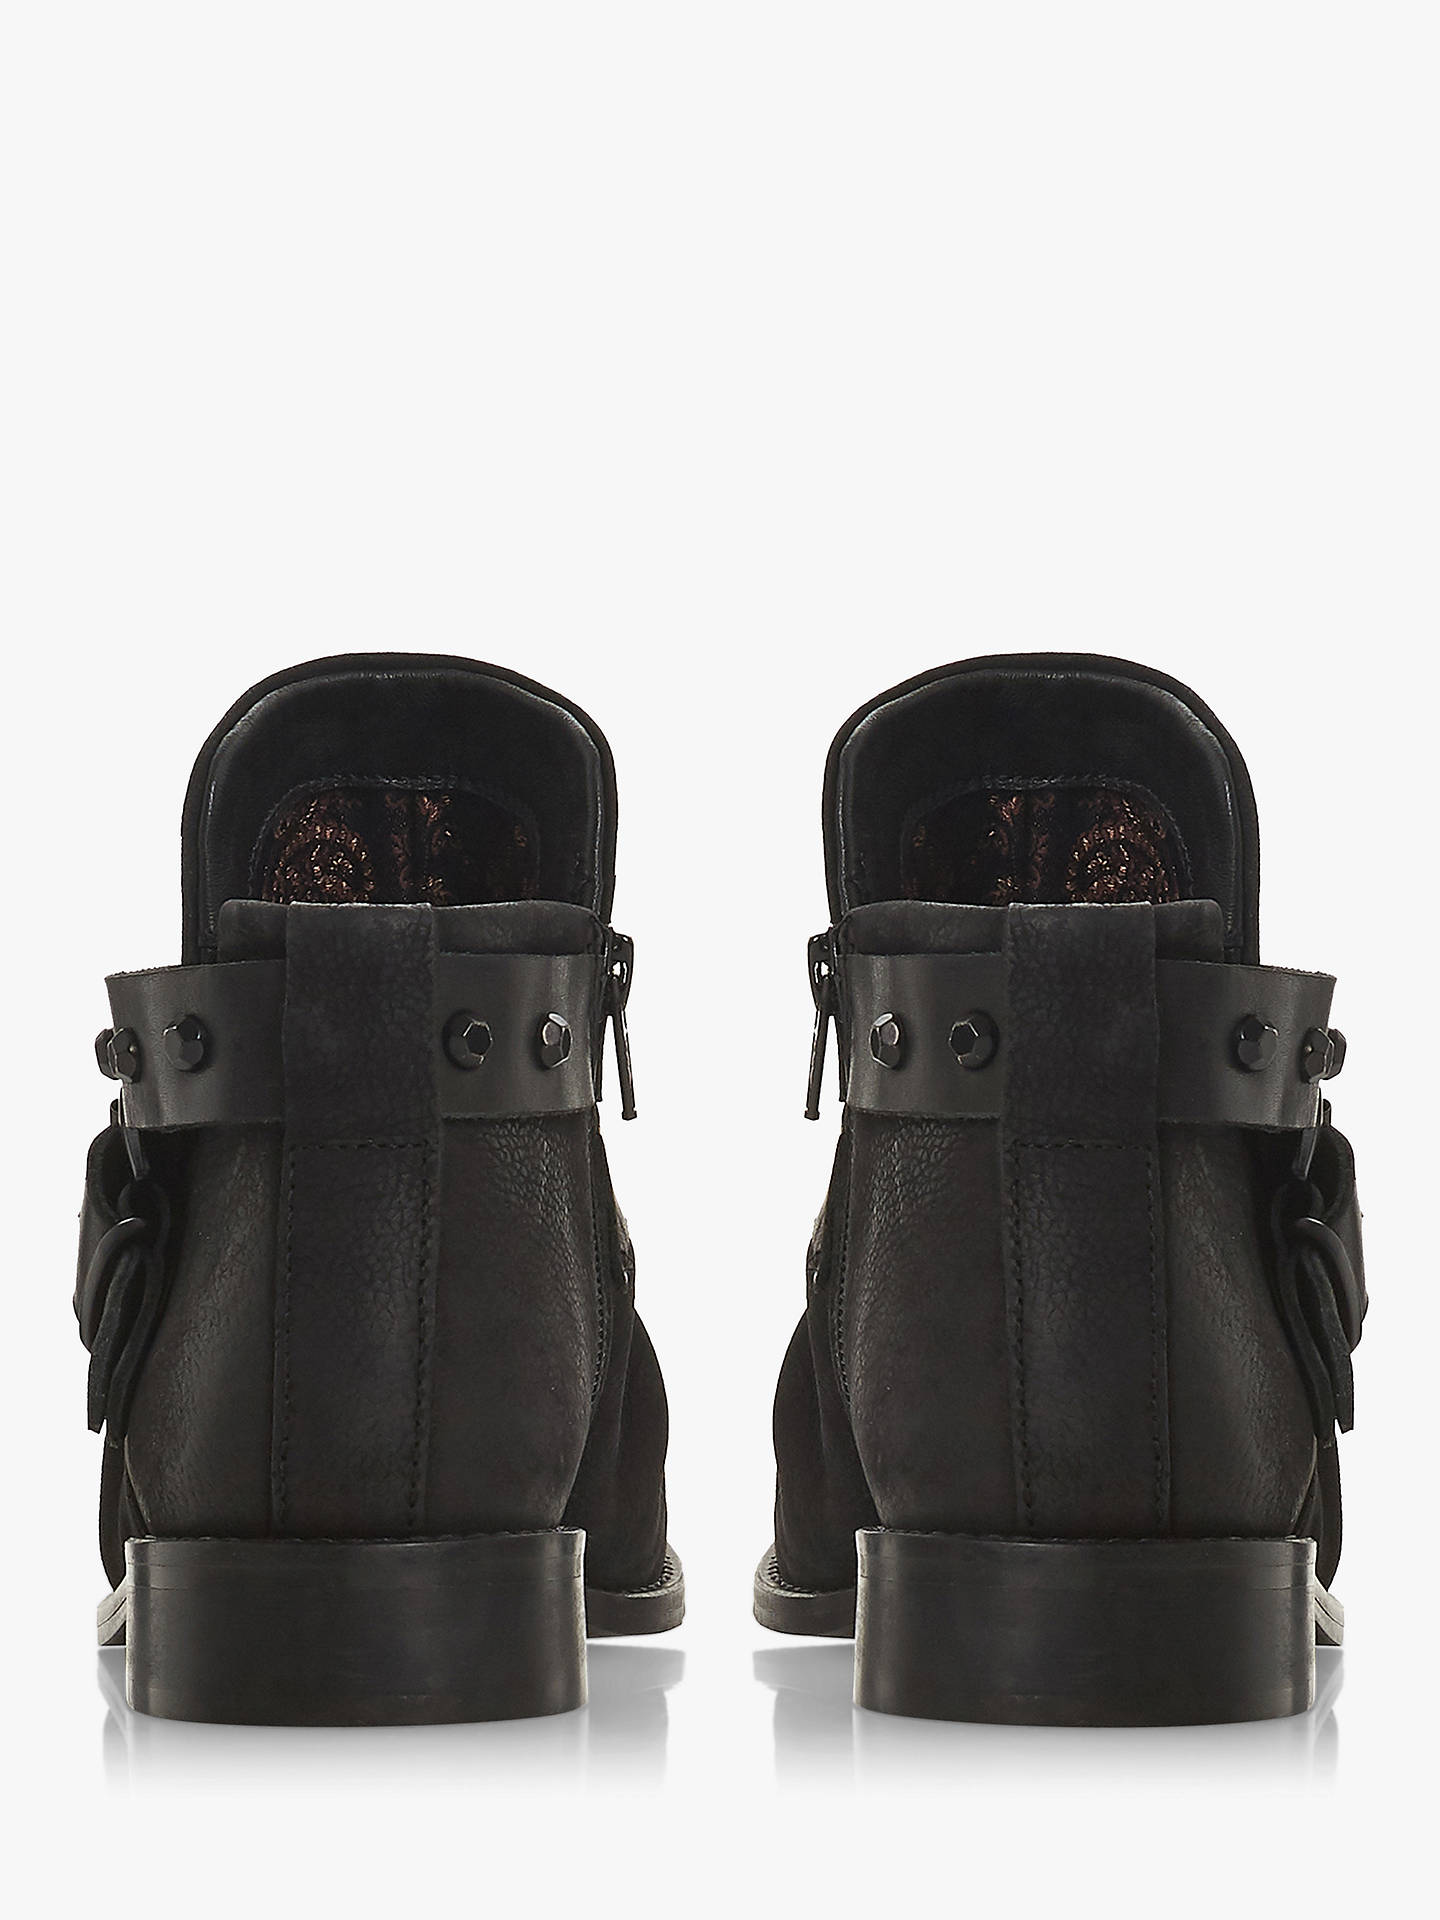 BuyBertie Portar Wrap Around Buckle Ankle Boots, Black Nubuck Leather, 5 Online at johnlewis.com